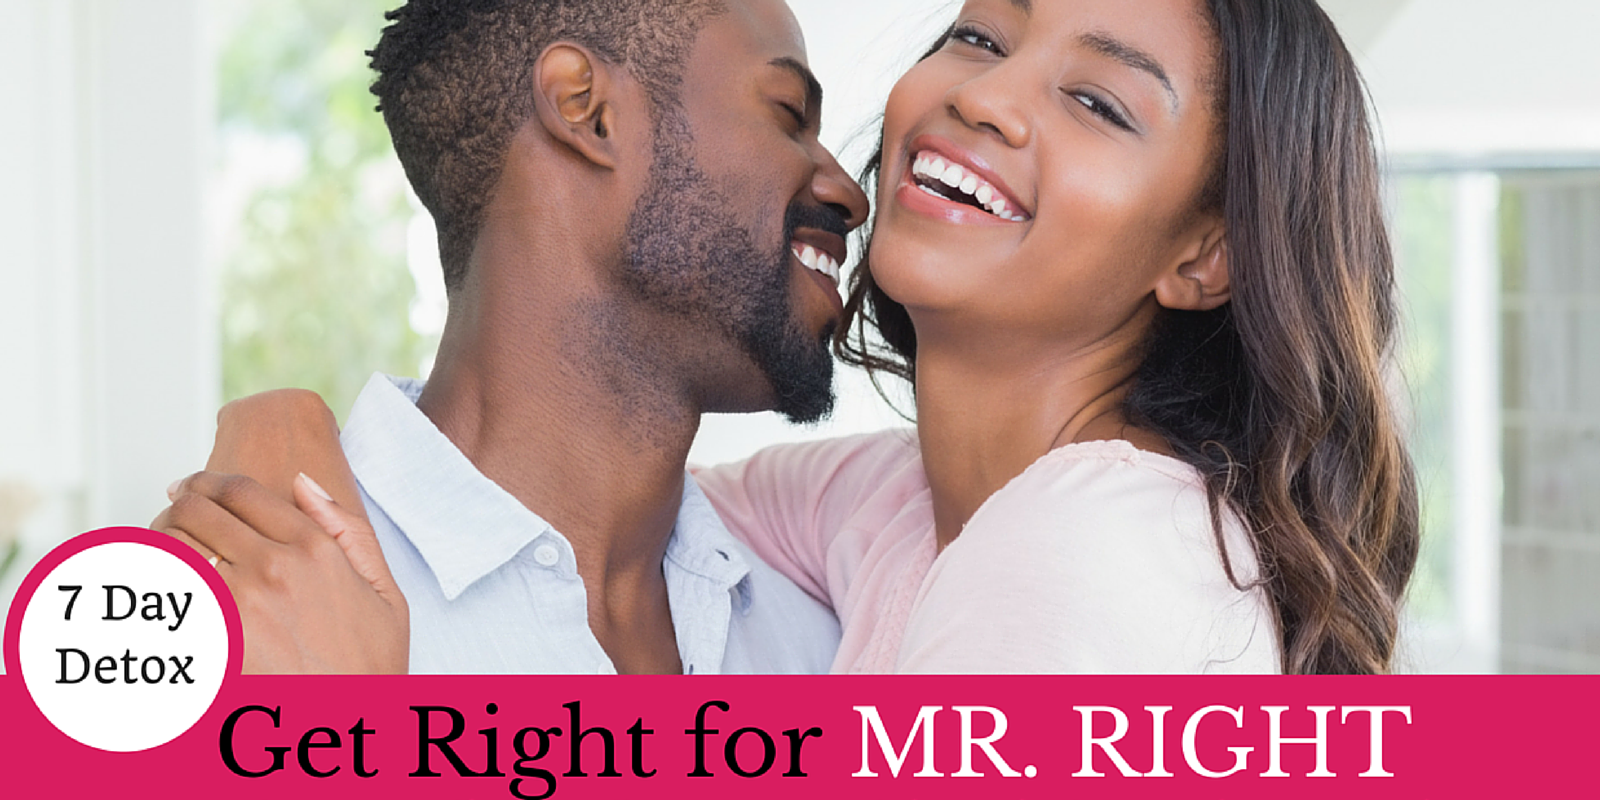 get right for mr. right detox challenge